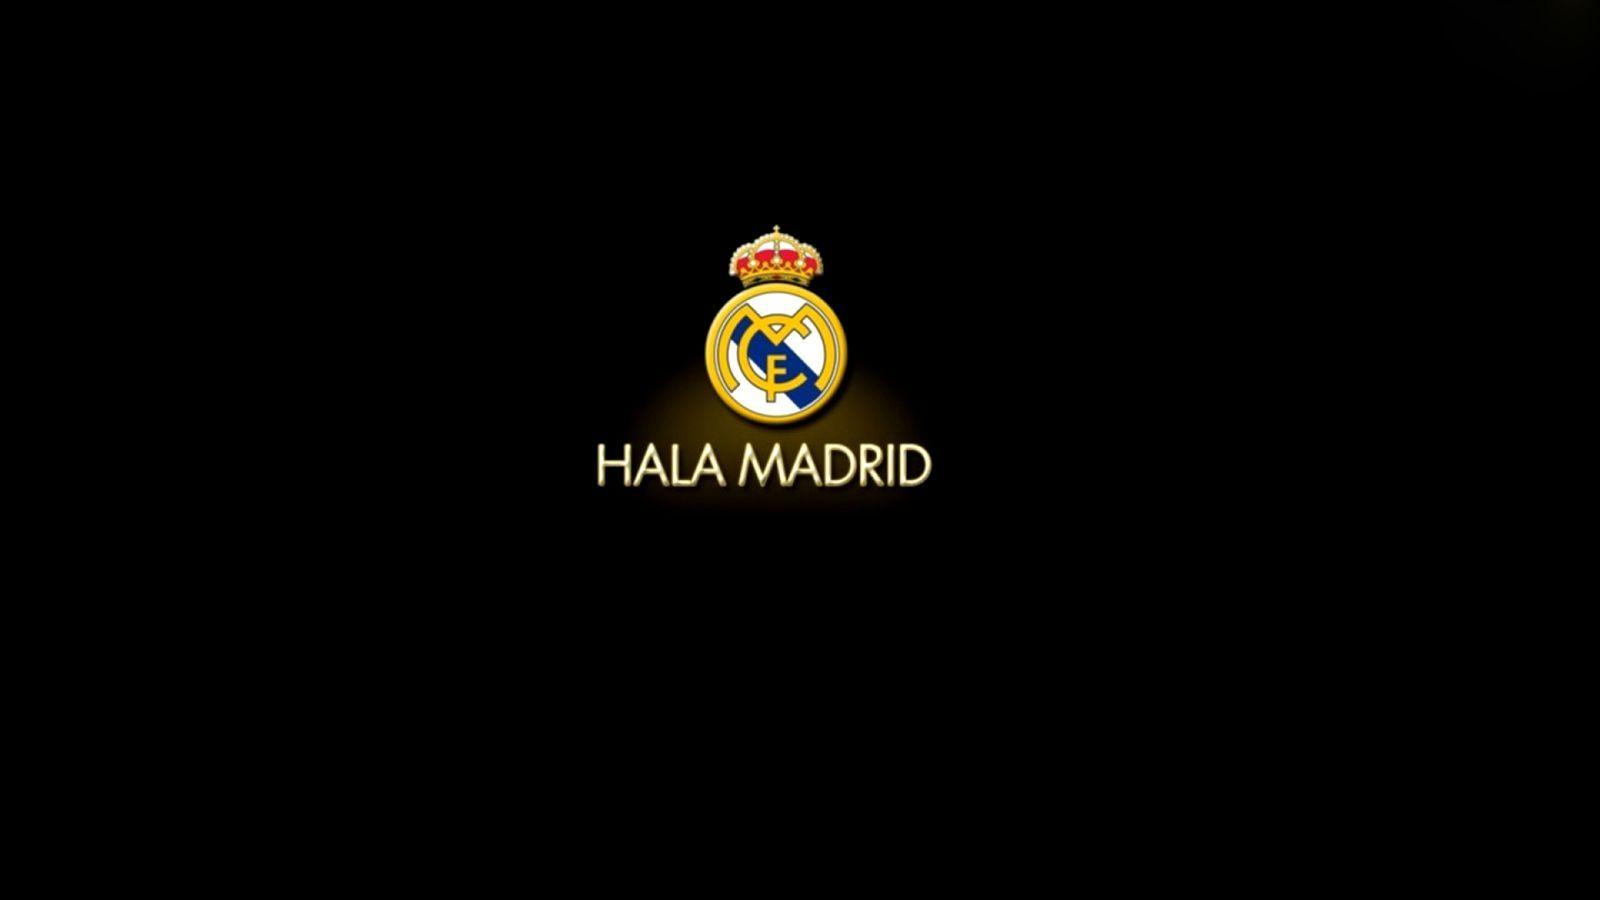 real madrid logo hd wallpapers download | Wallput.com